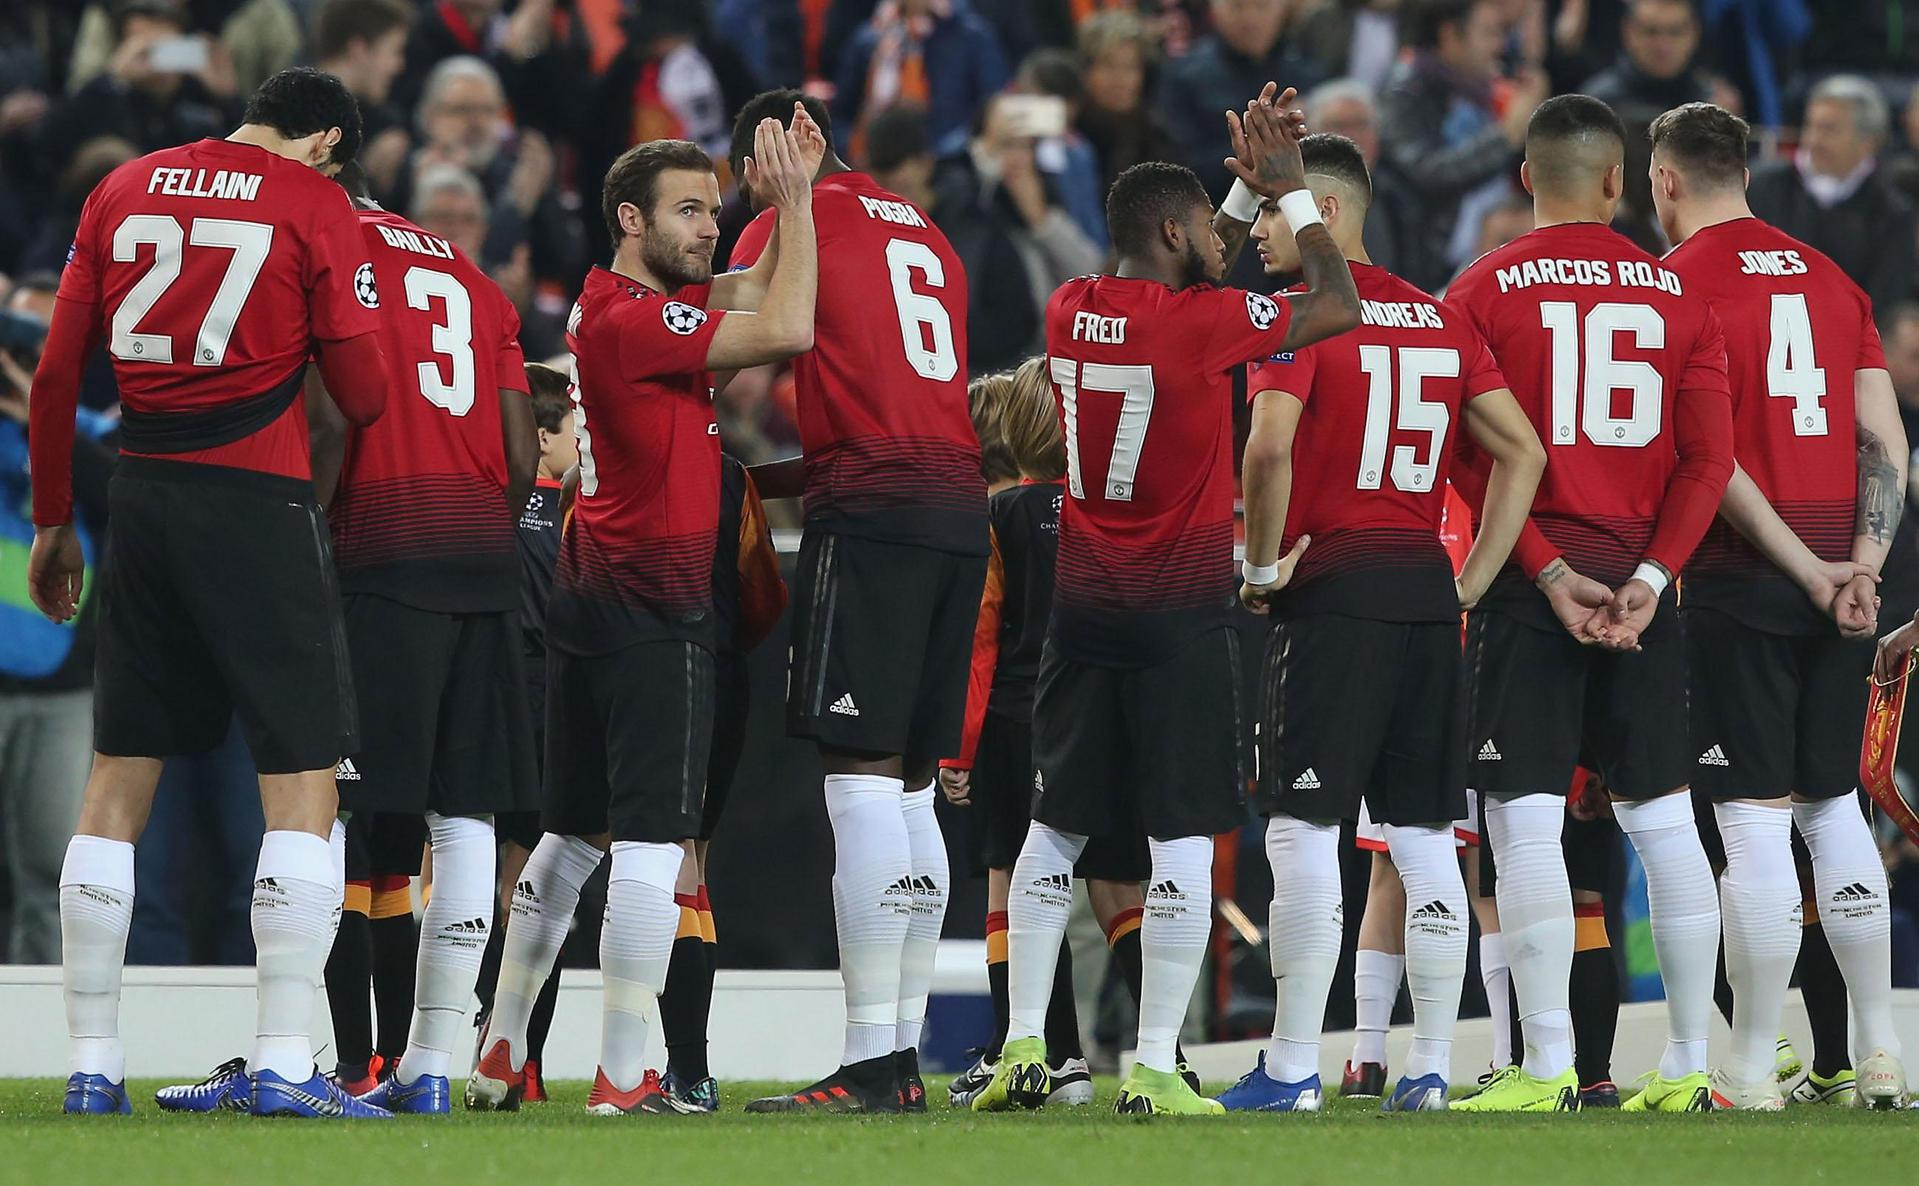 Manchester United line up before the Valencia match